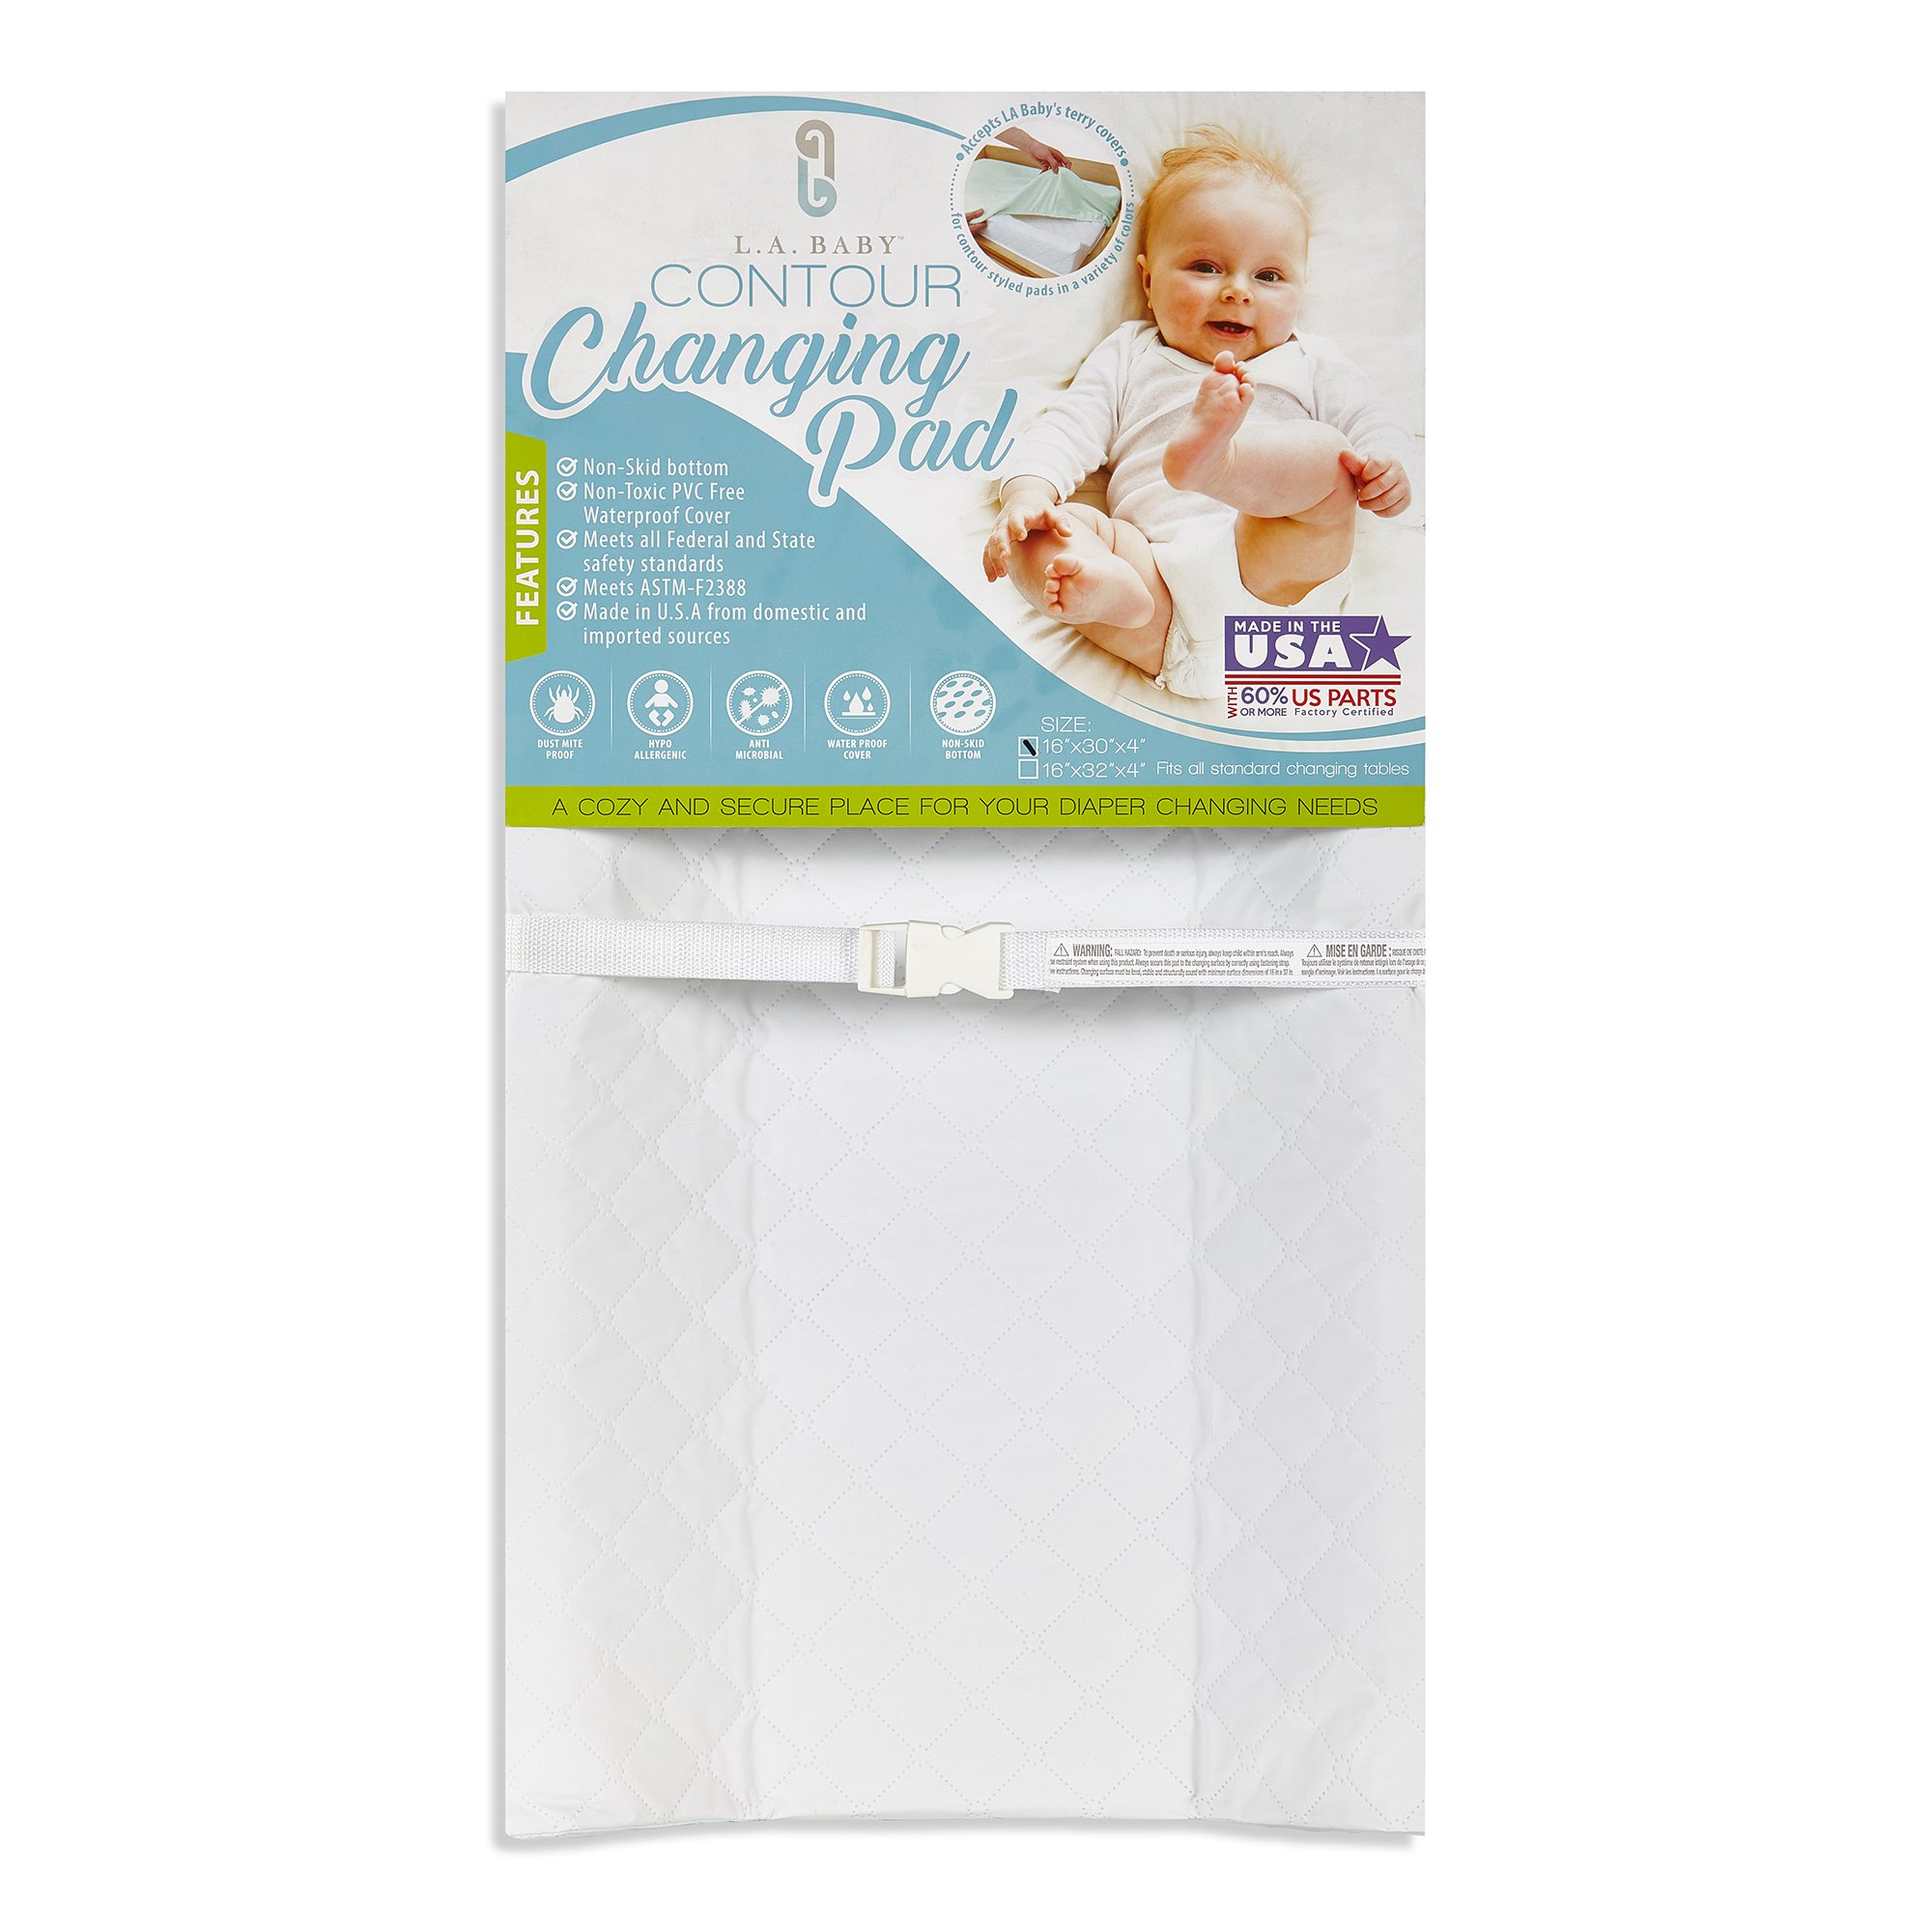 LA Baby Waterproof Contour Changing Pad, 32'' - Made in USA. Easy to Clean w/Non-Skid Bottom, Safety Strap, Fits All Standard Changing Tables/Dresser Tops for Best Infant Diaper Change by LA Baby